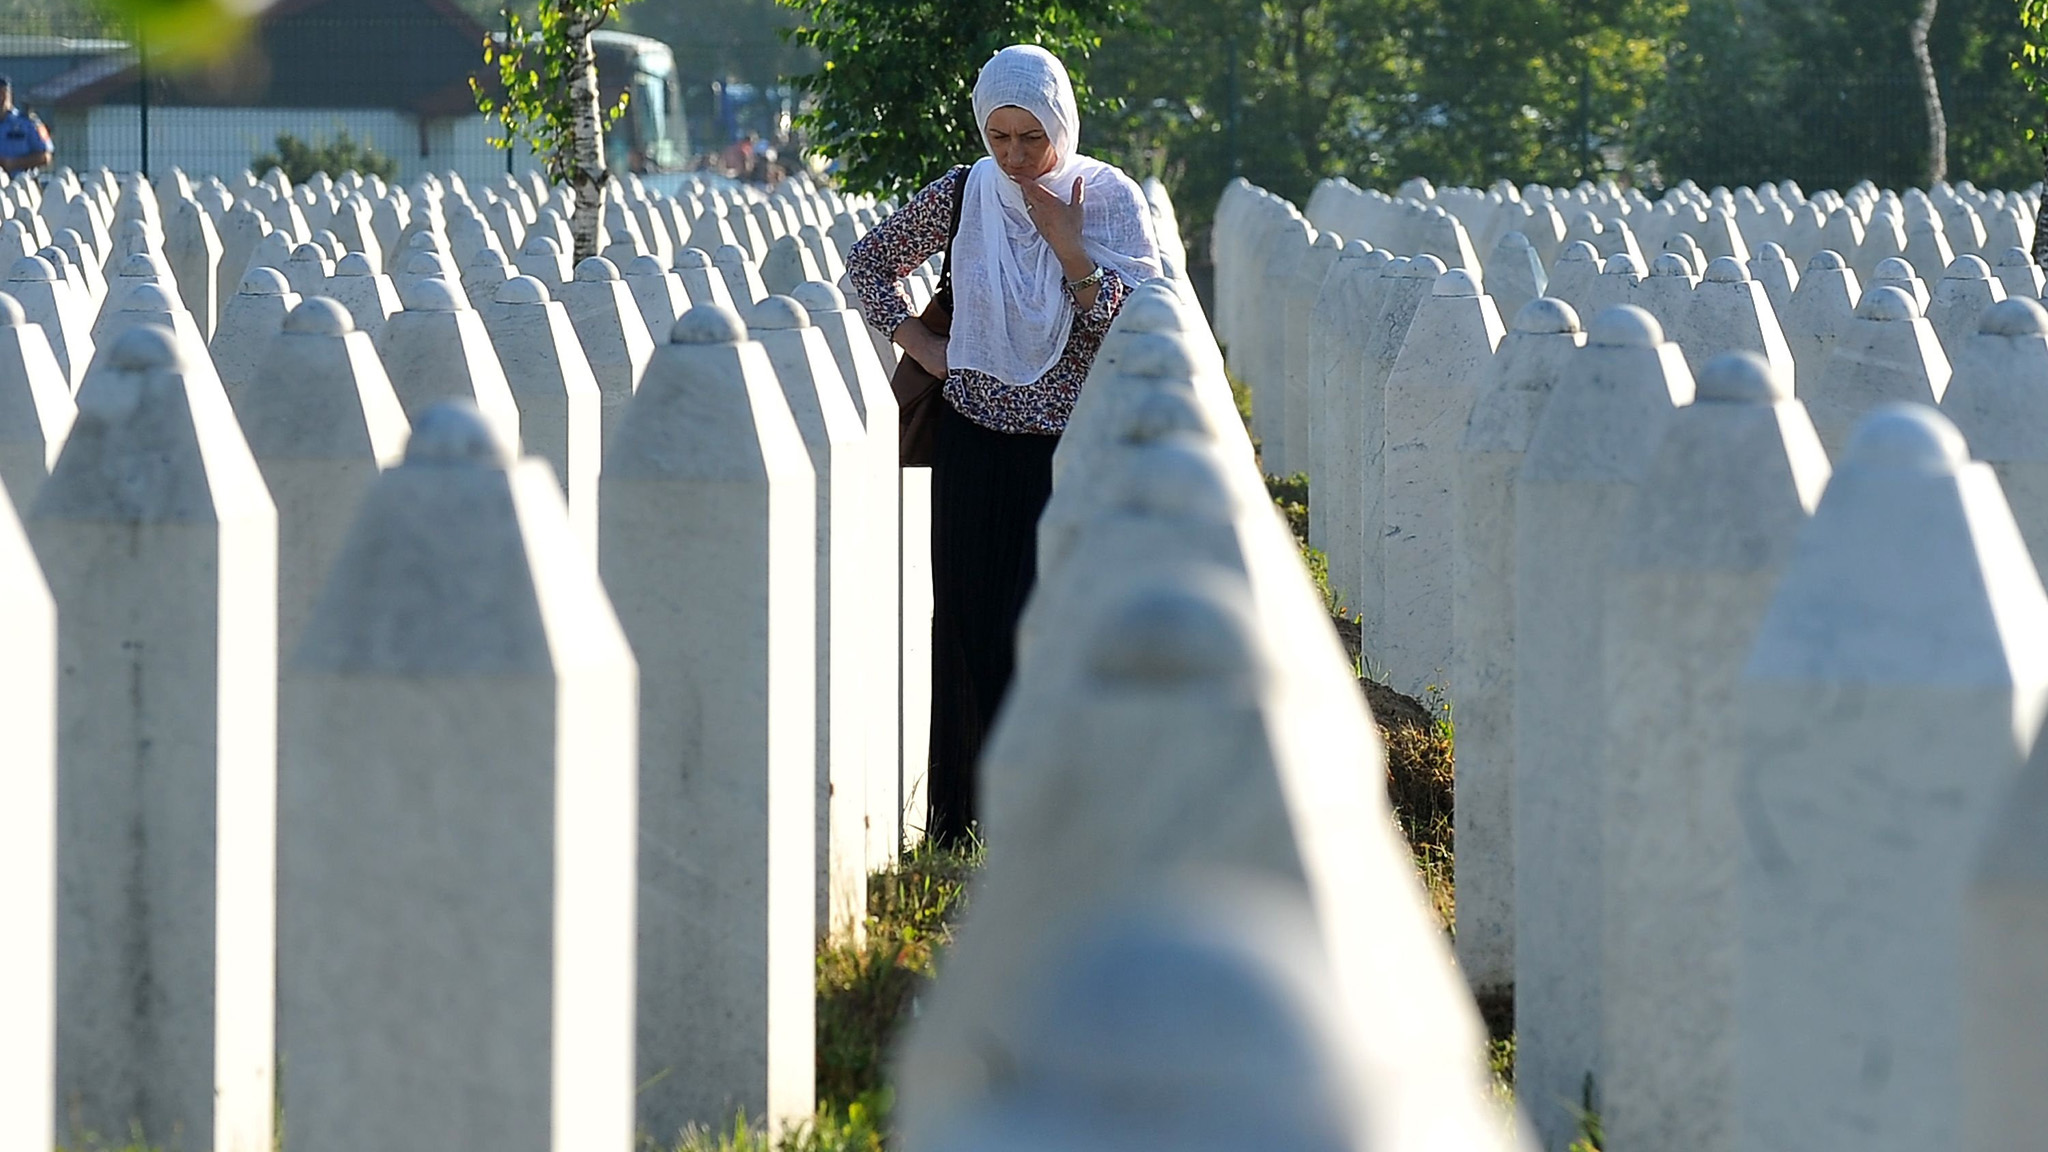 Bosnian town of Srebrenica, on July 11, 2016.  The bodies of 127 victims of the Srebrenica massacre in wartime Bosnia, the latest to be identified of over 8,000 who died, will be buried at the memorial site in Srebrenica on July 11, on the 21th anniversary of the mass killing.  / AFP PHOTO / ELVIS BARUKCICELVIS BARUKCIC/AFP/Getty Images